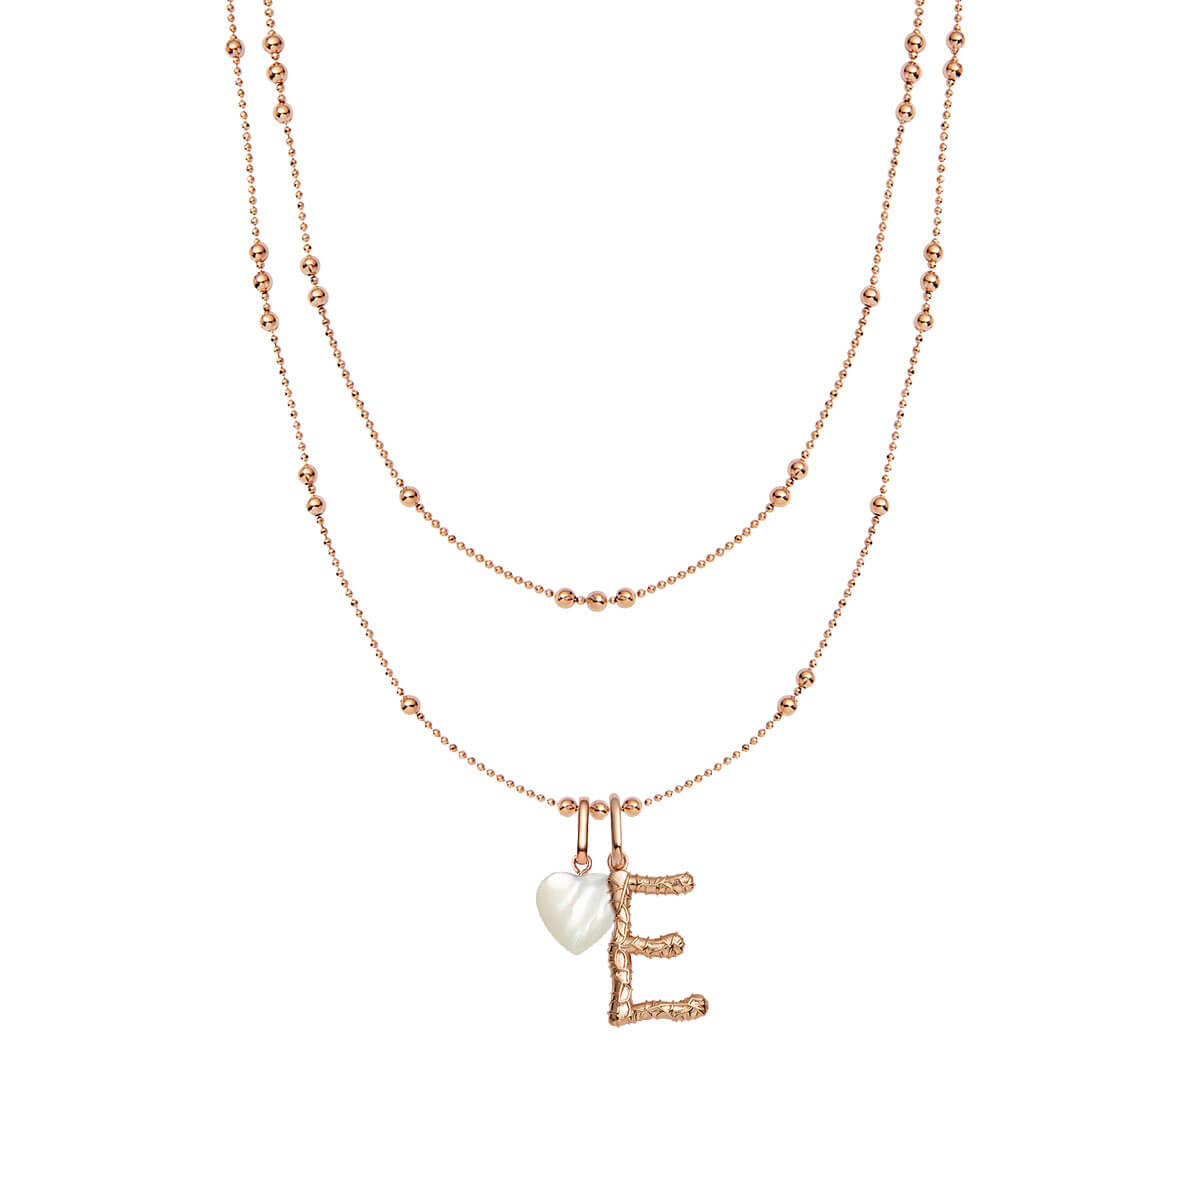 Foil Letter & Birthstone Double Sphere Chain Necklace (Rose Gold)